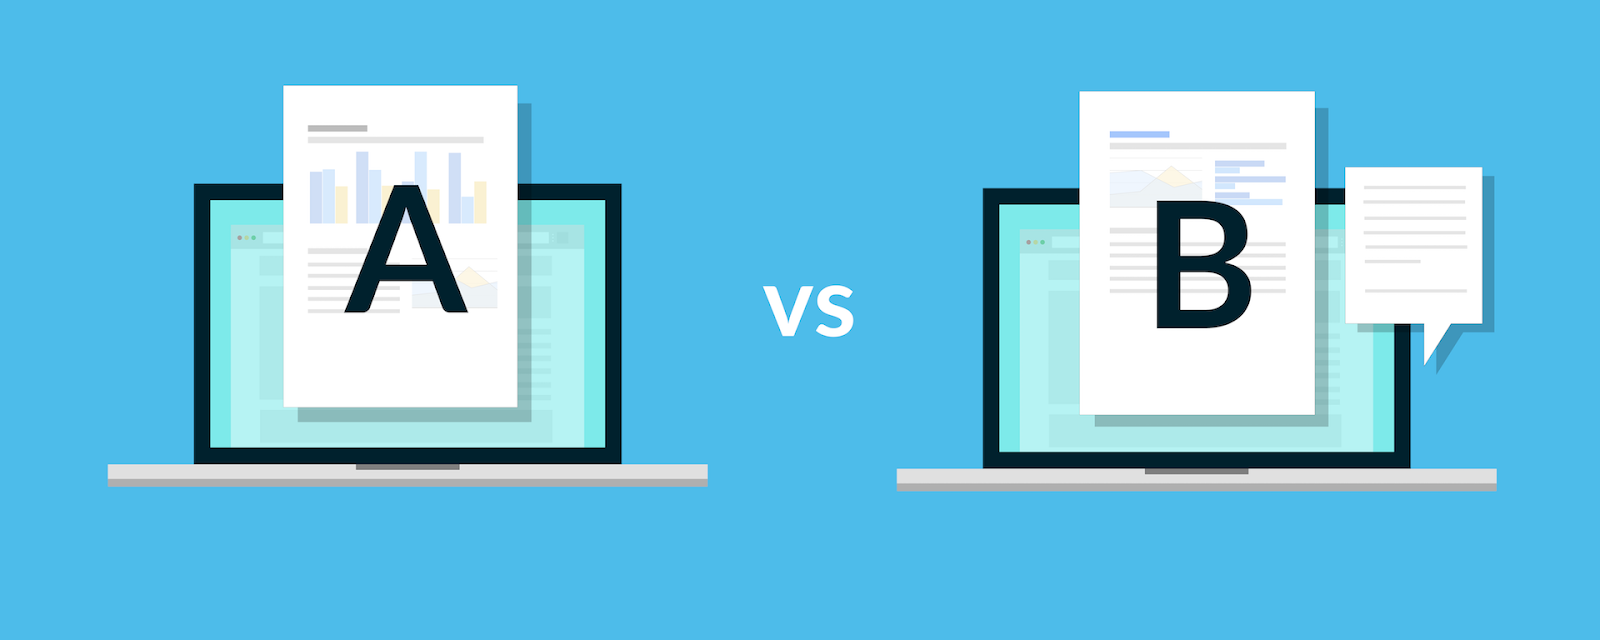 Should You Pay People To Test Out Your Website? How Usability Testing Can Improve Your UX